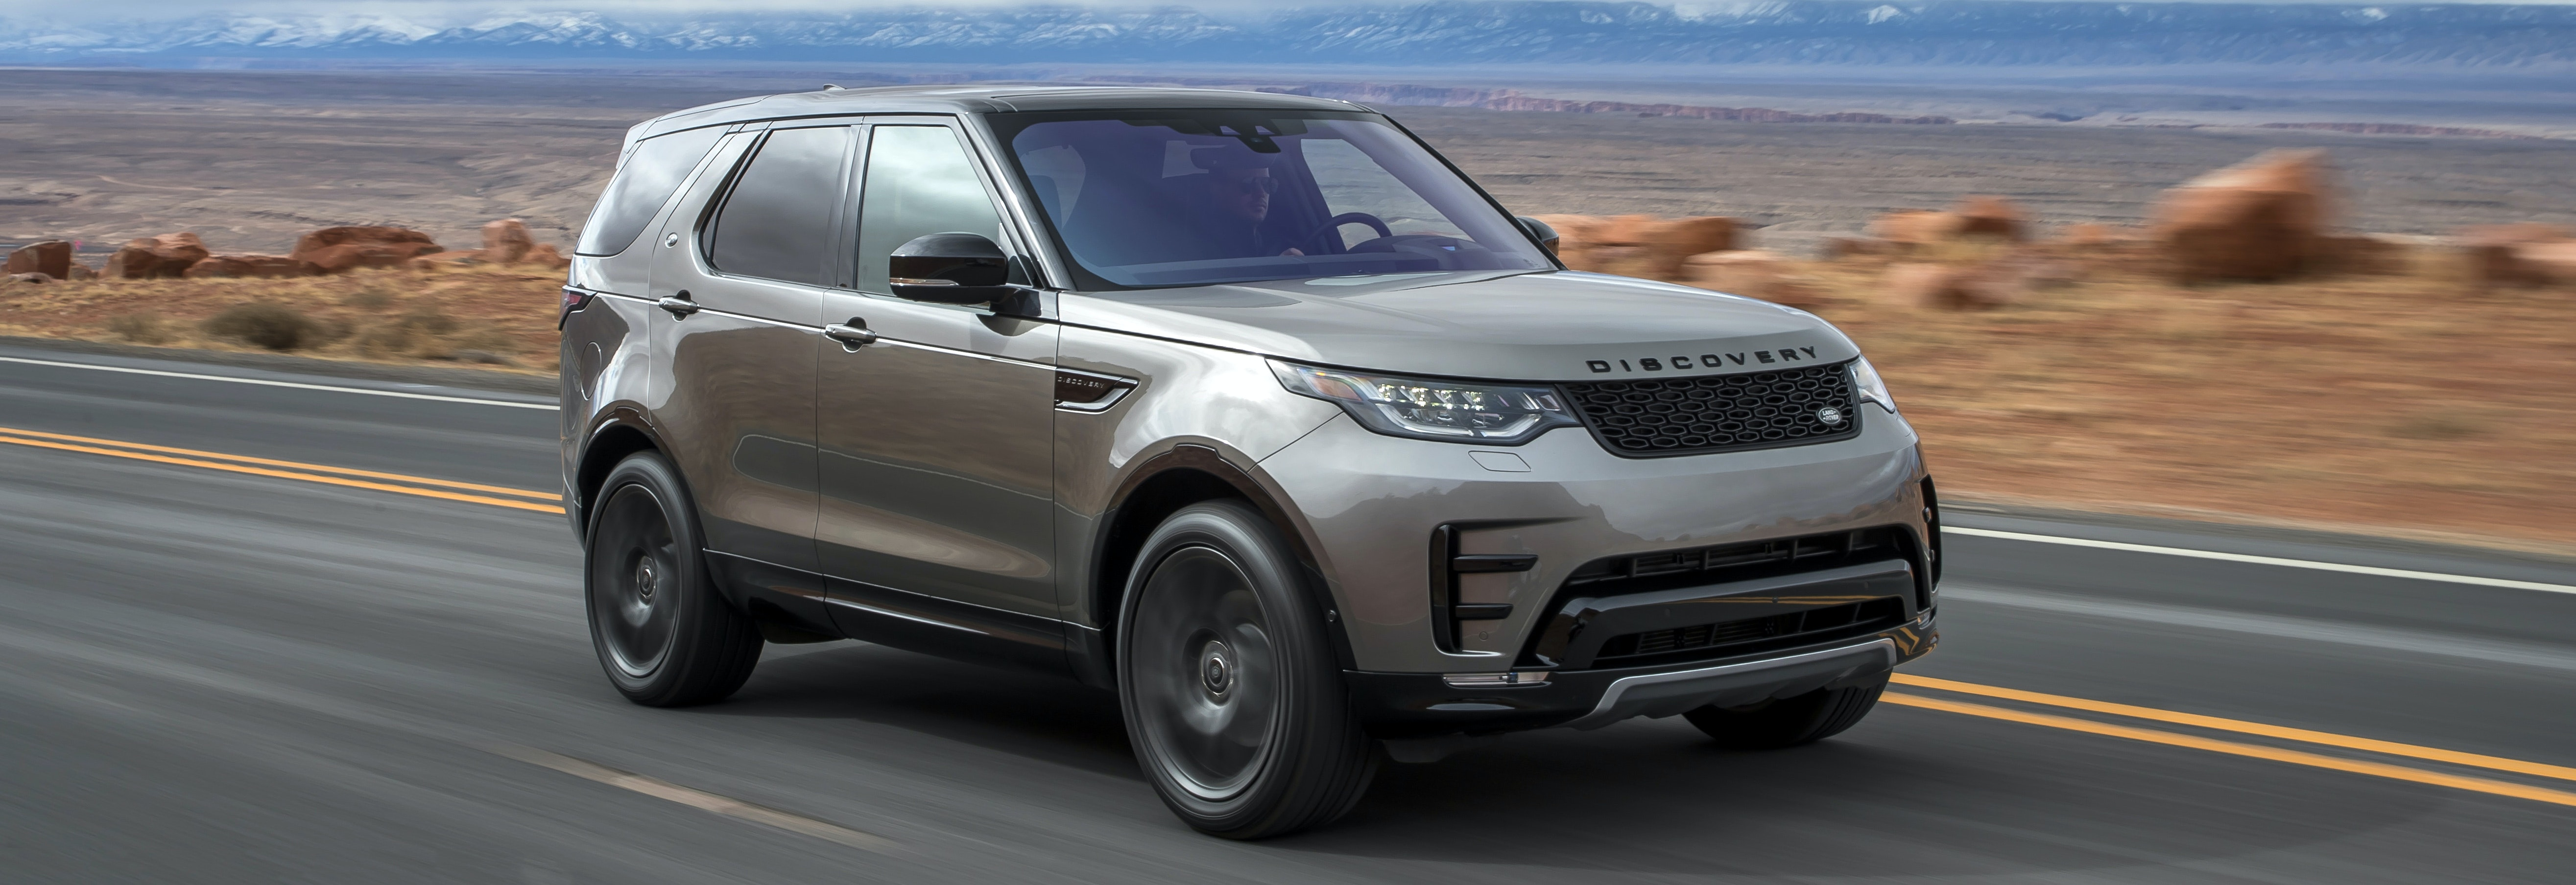 2018 land rover discovery grey driving front